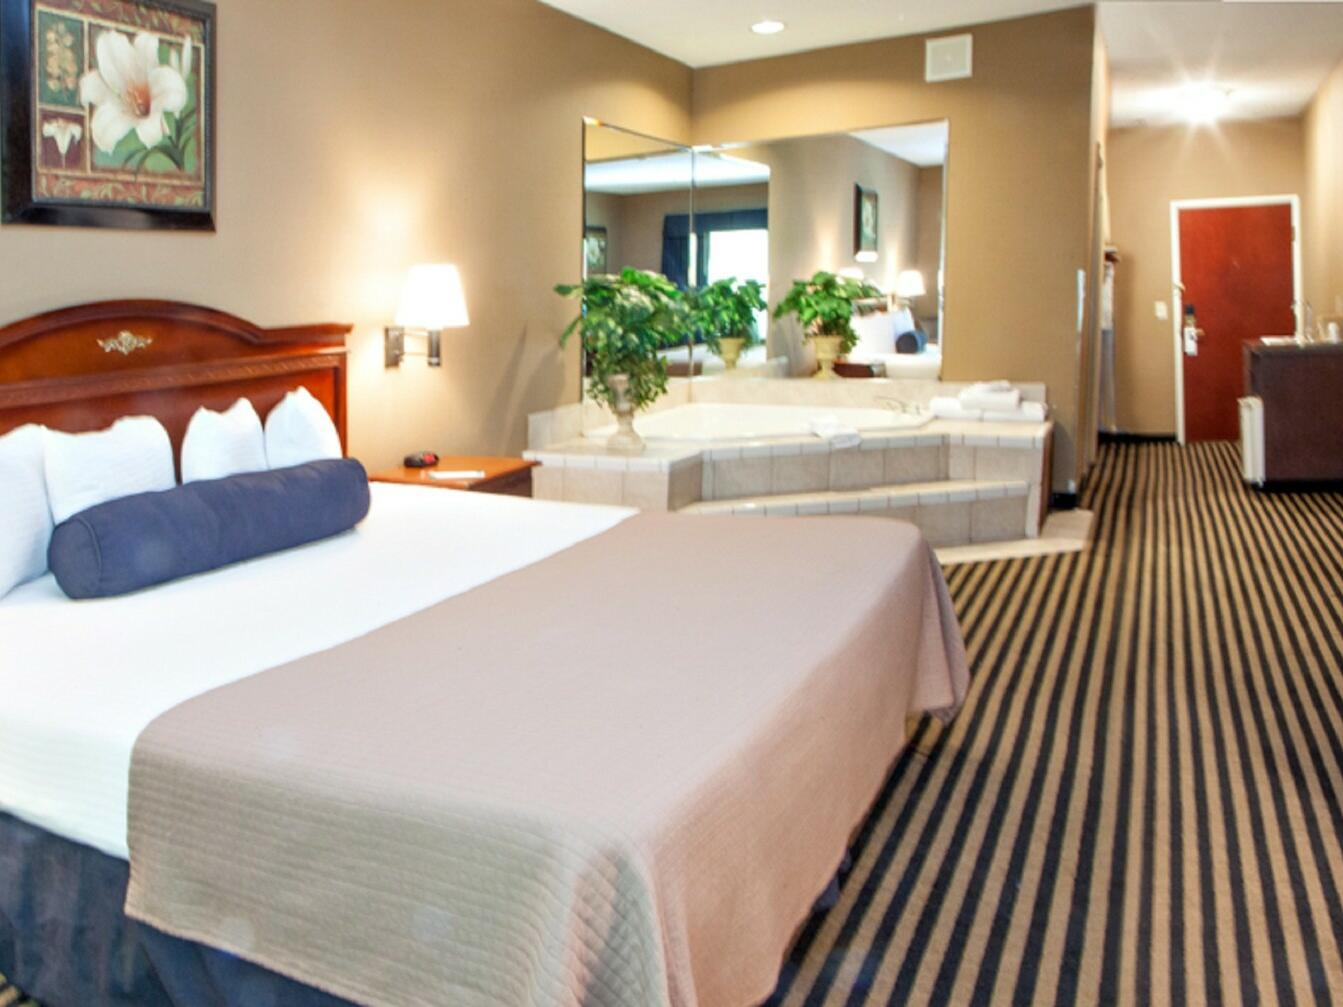 King Jacuzzi Suite with one bed and a jacuzzi at Mountain Inn & Suites